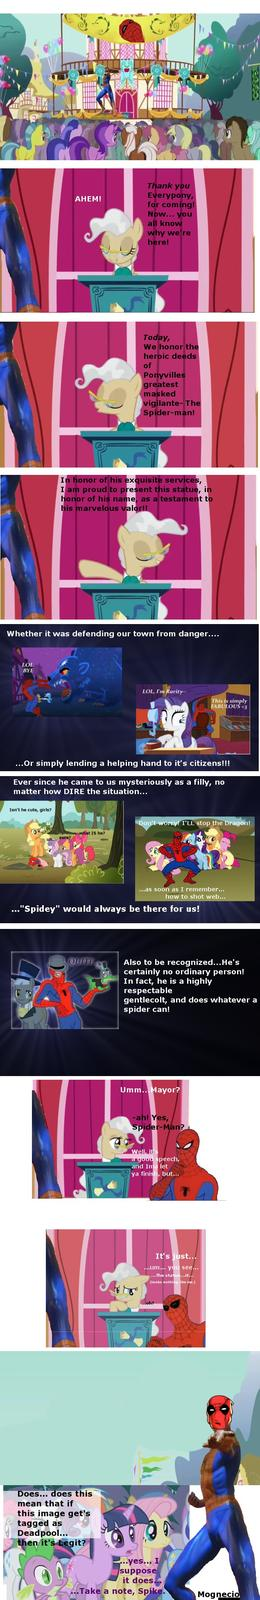 spidey__hero_of_ponyville_by_mogneciothebrave-d423i00.jpg